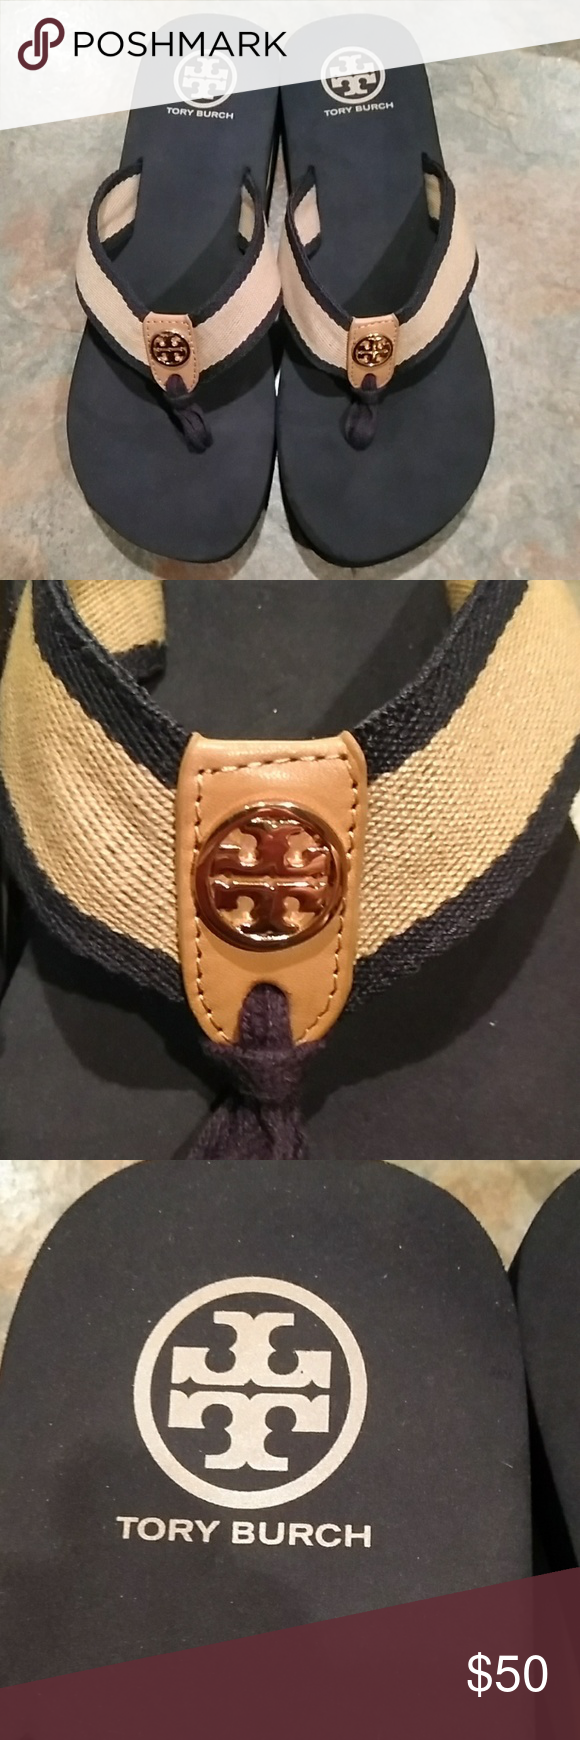 Tory Burch Shoes | Tory Burch Wedge Sandals | Color: Blue/Tan | Size: 9 #lowwedgesandals Tory Burch  wedge sandals Tory Burch sandals with low wedge heel. Tan and baby in color with cloths straps with color emblem. In great condition. Tory Burch Shoes Sandals #lowwedgesandals